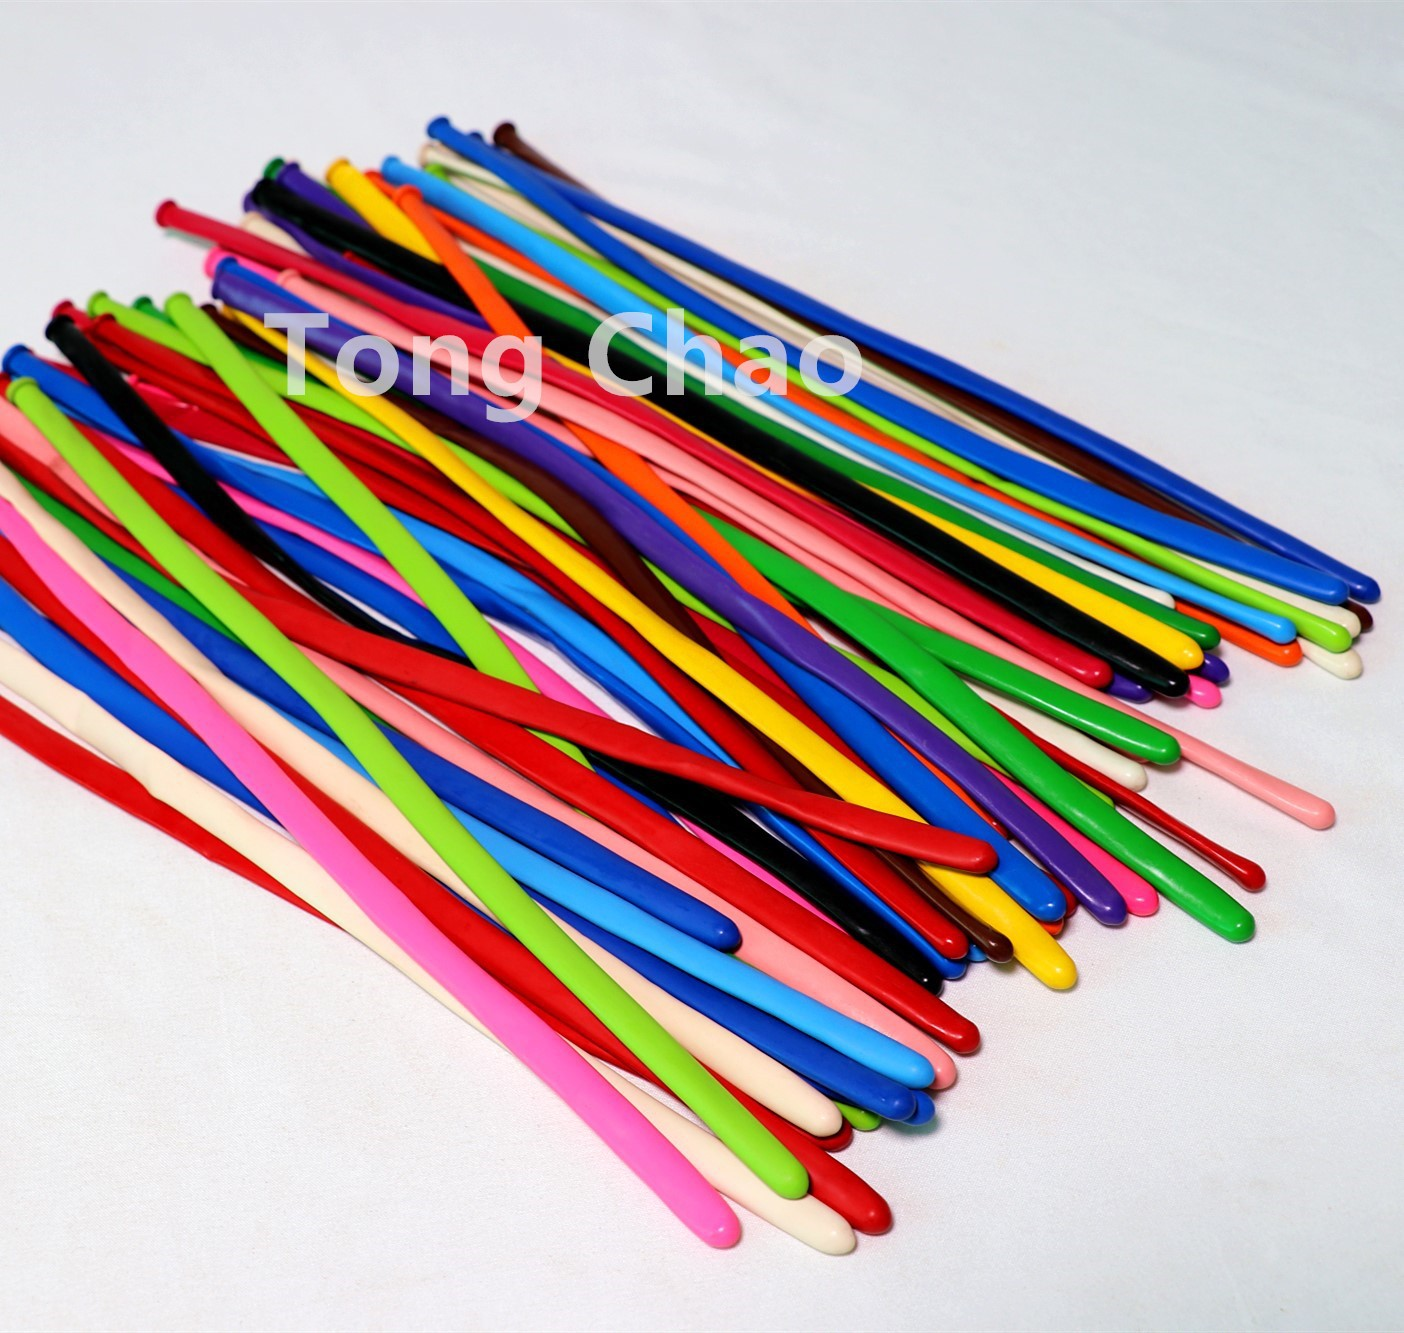 100pcs/lot Assorted Colors Modeling Balloons Ballons Birthday Party Decoration Promotion Activities100pcs/lot Assorted Colors Modeling Balloons Ballons Birthday Party Decoration Promotion Activities